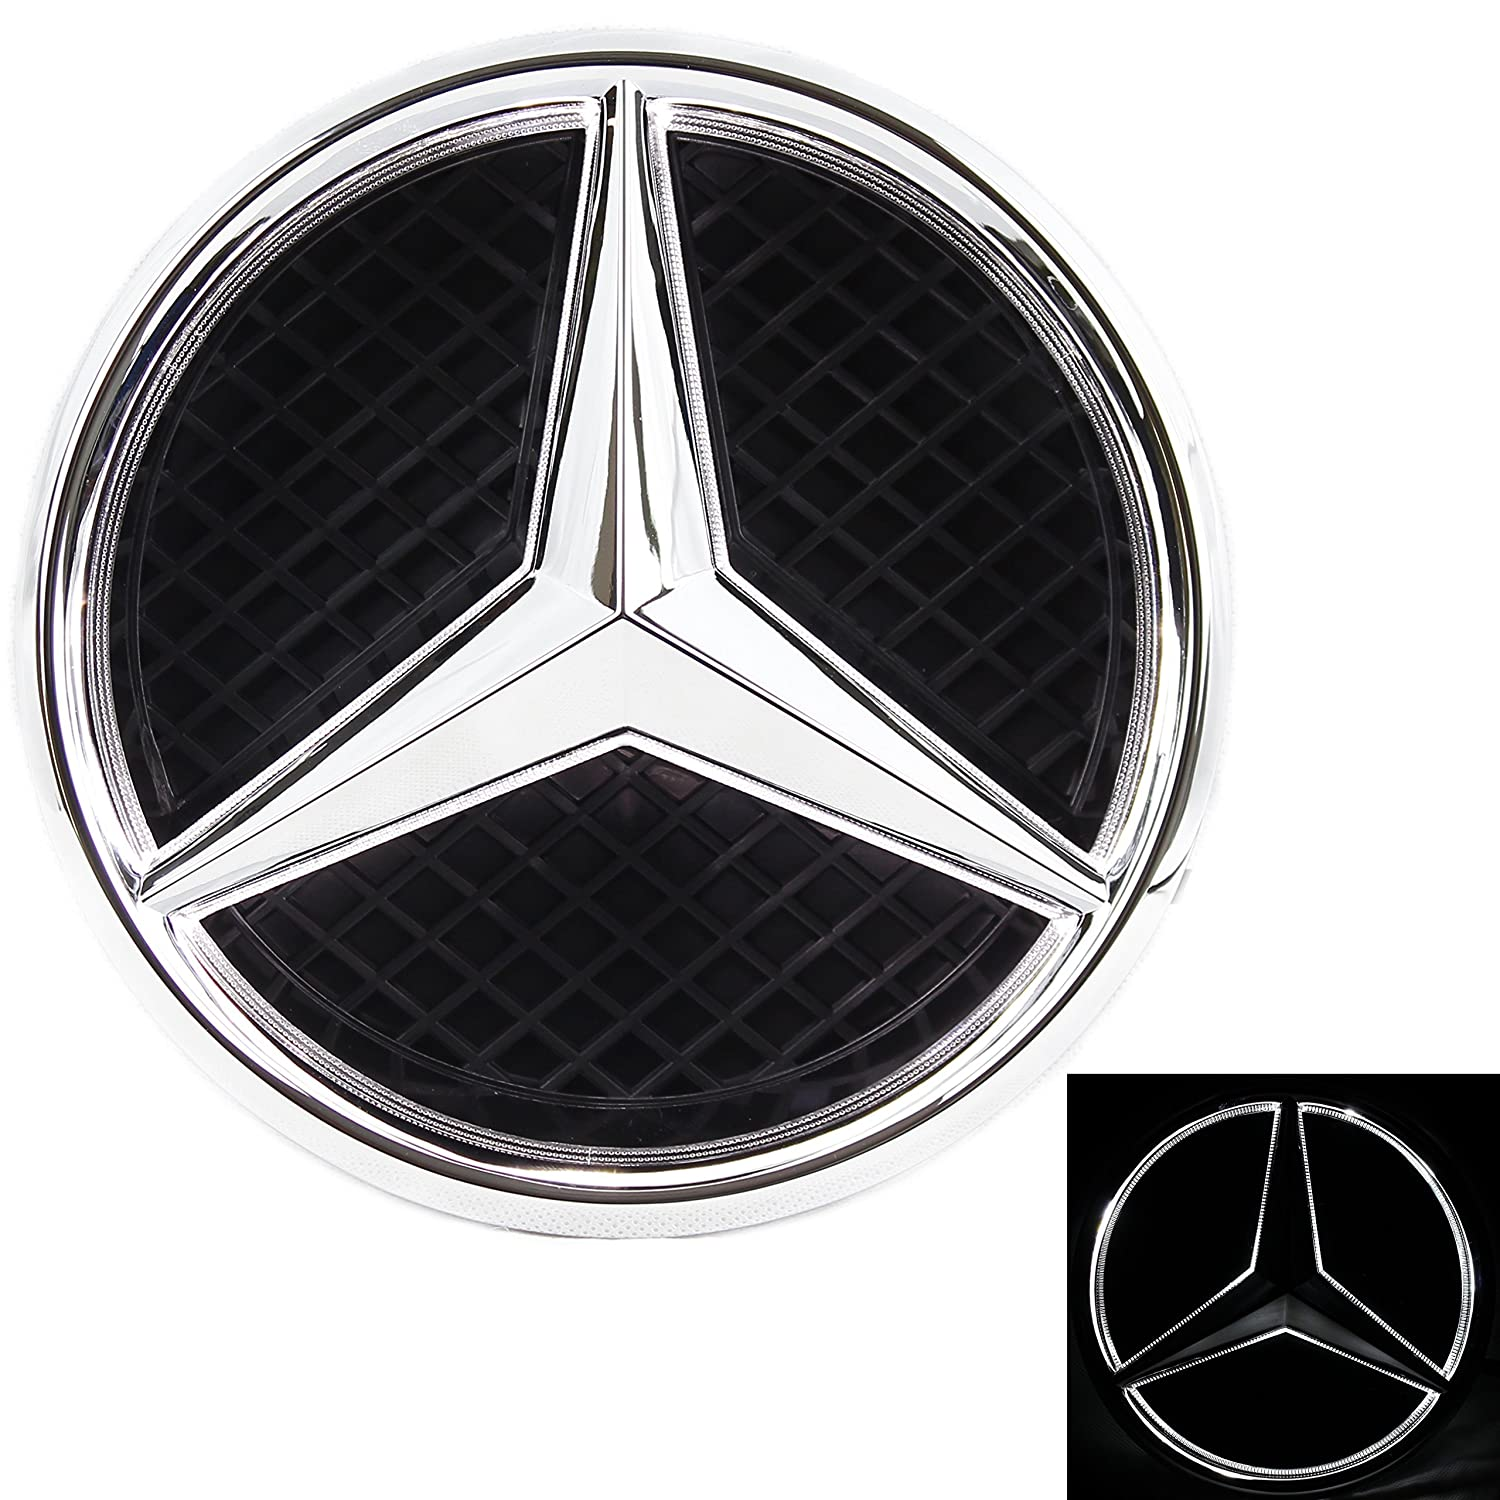 Jetstyle Led Emblem For Mercedes Benz 2011 2018 Front Auxiliary Fuse Box Diagram Ml500 Car Grille Badge Illuminated Logo Hood Star Drl White Light Drive Brighter